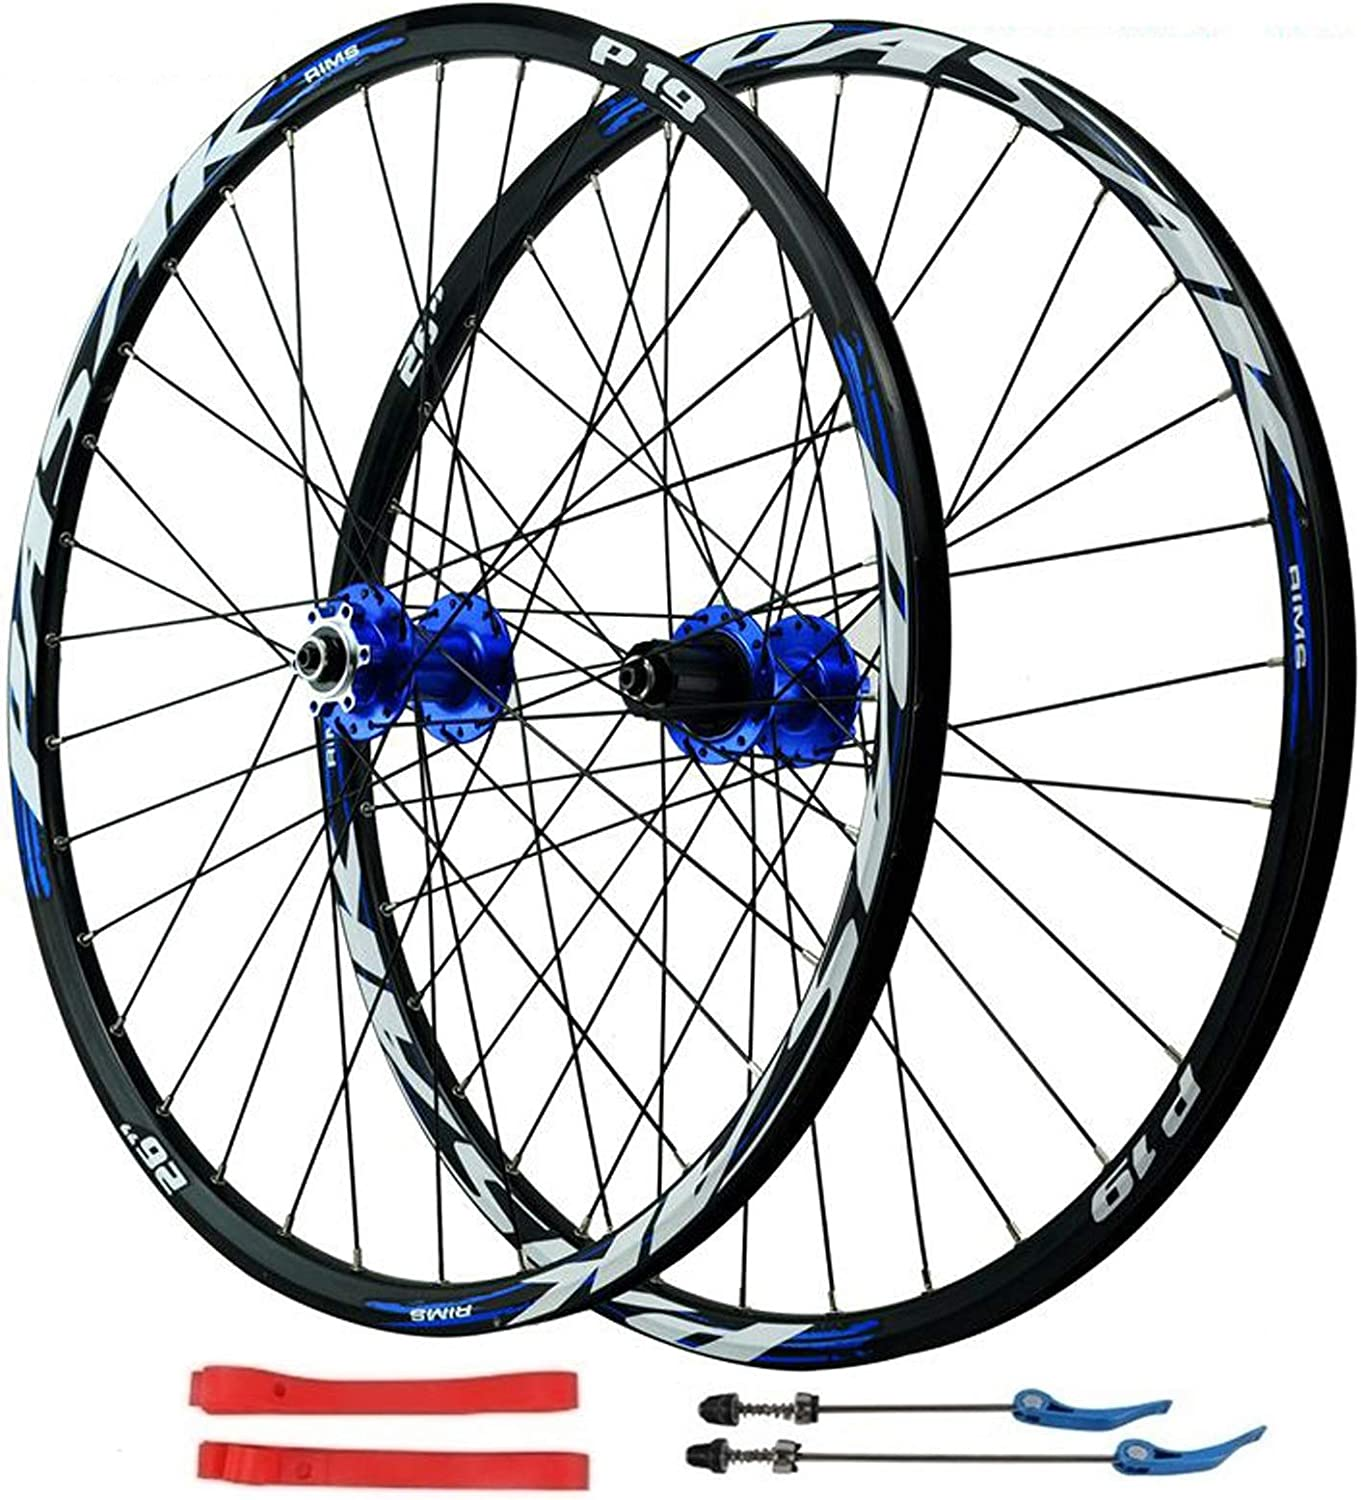 Mountain Bicycle Wheels New Free Shipping 26 Inch Disc In Release Overseas parallel import regular item Brake 27.5 Quick